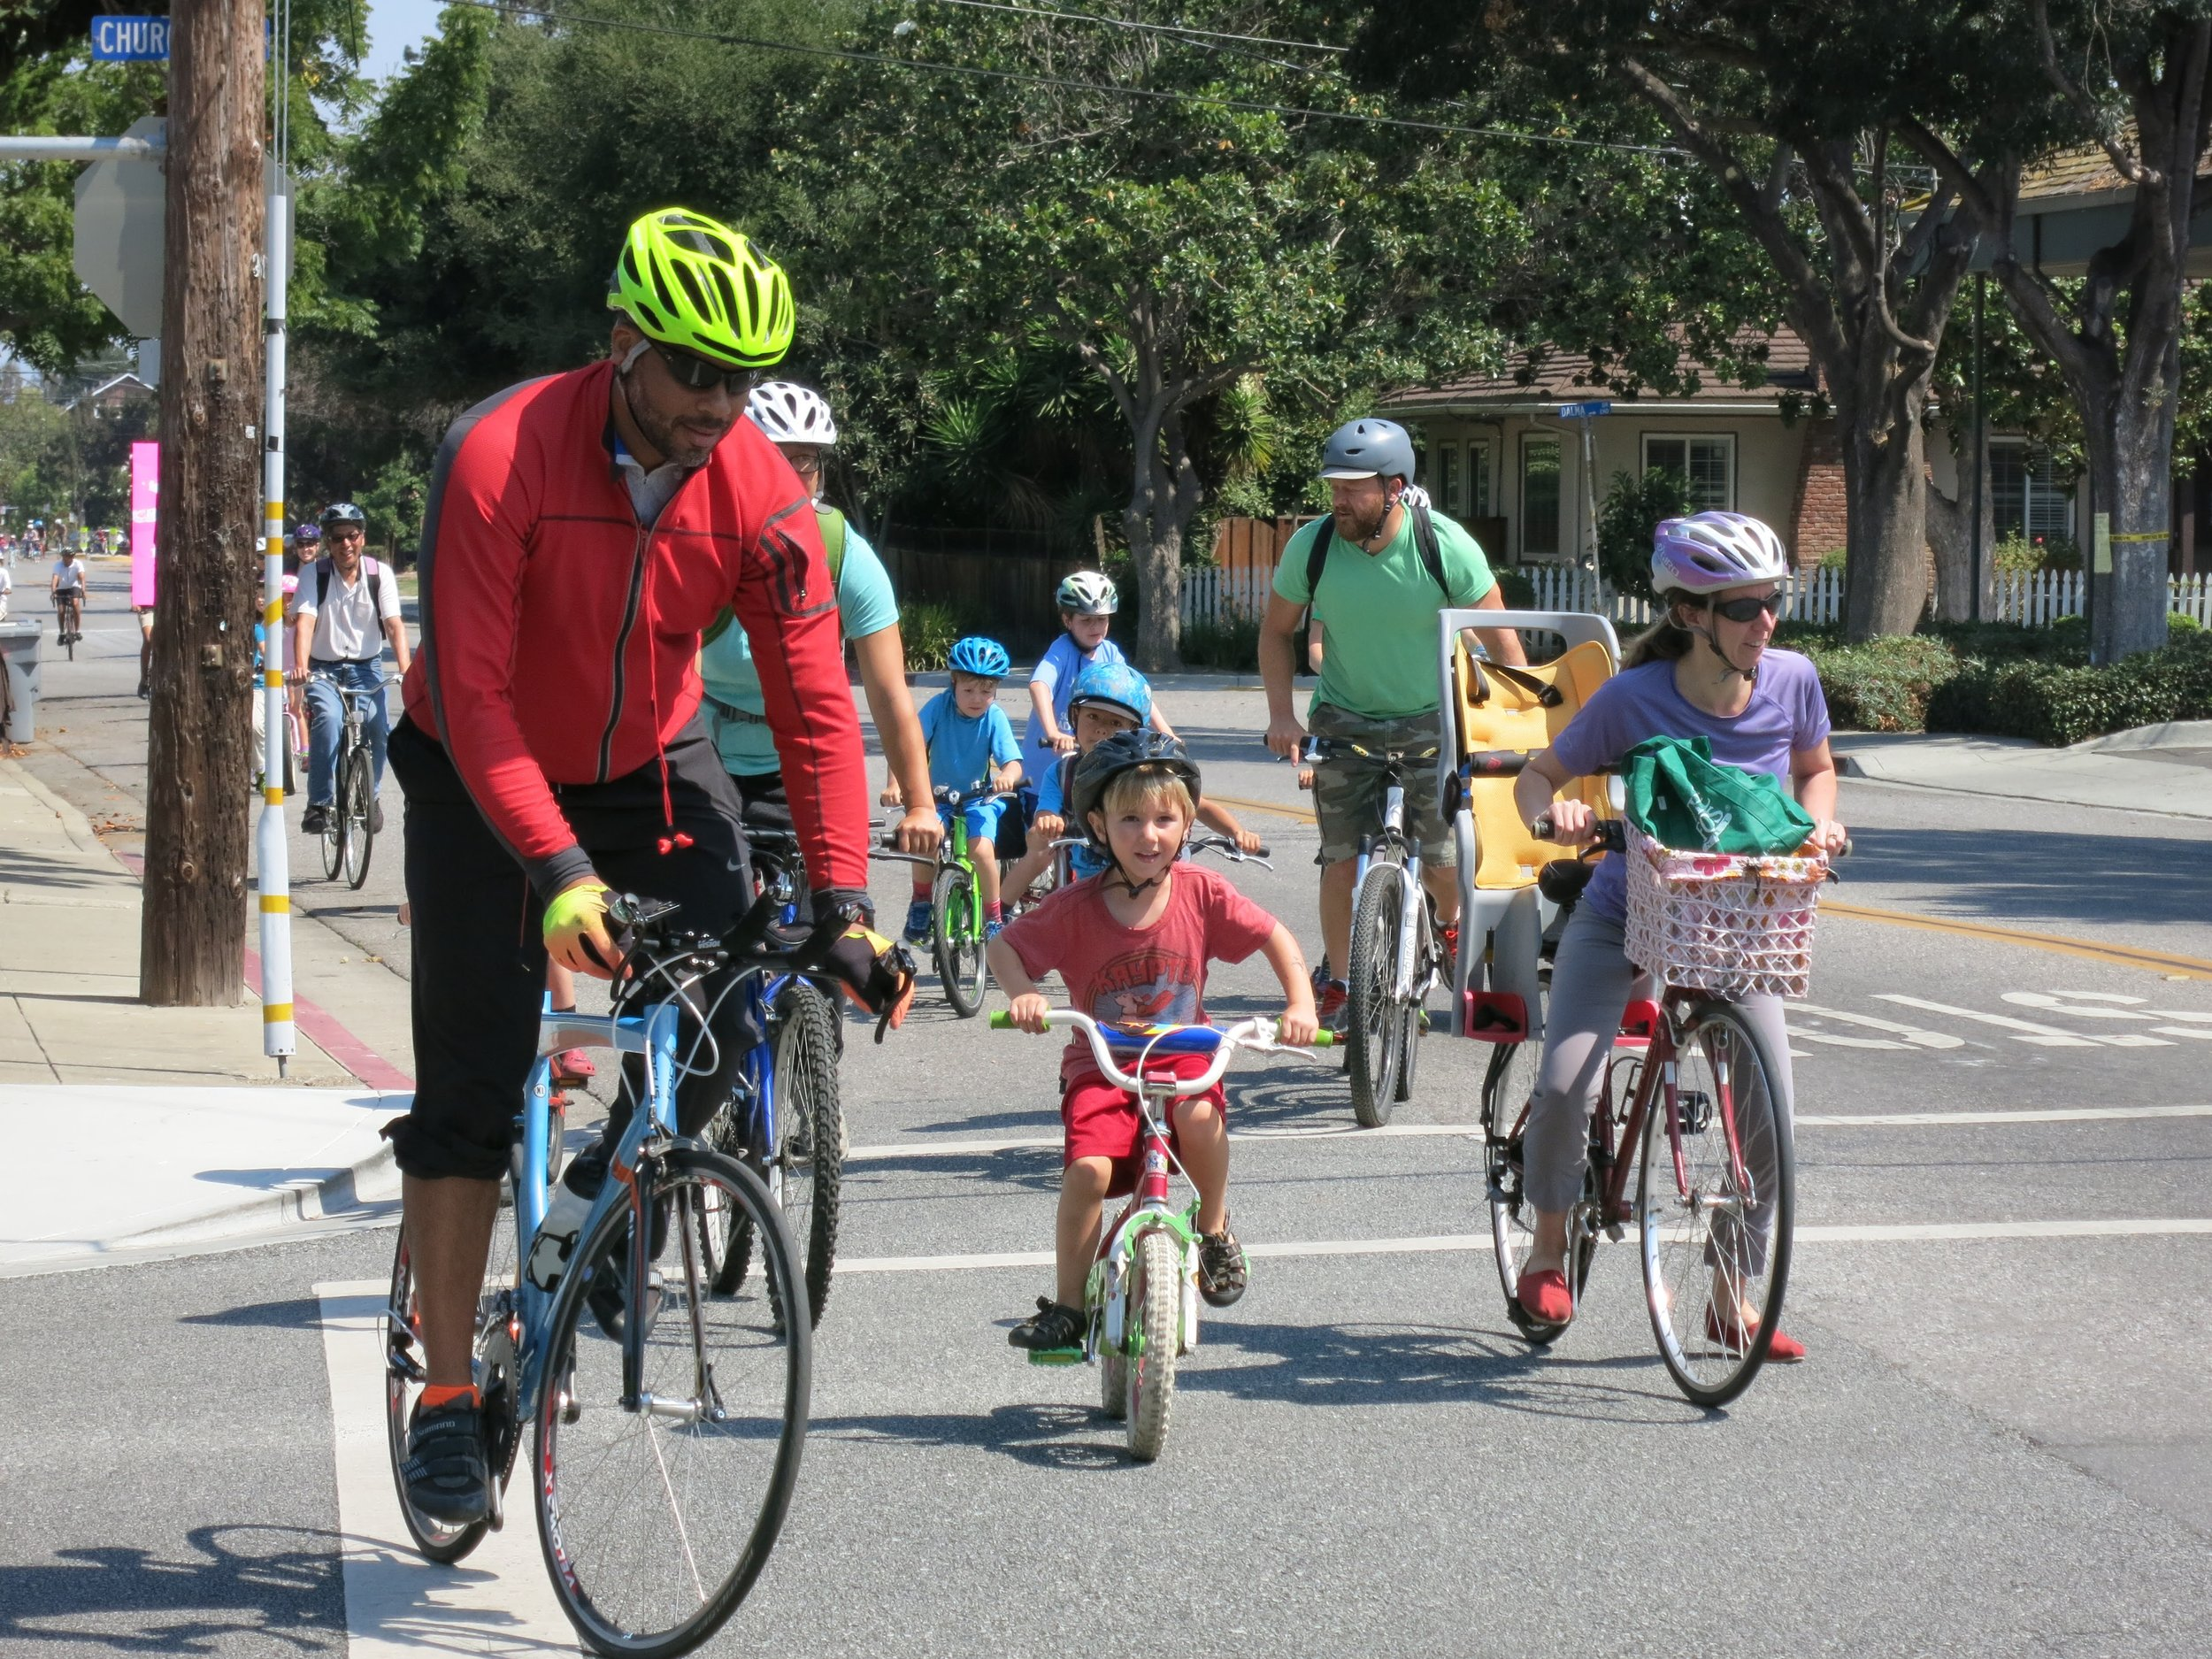 Superintendent Rudolph rides with Mountain View families - Photo by Chris Brunn